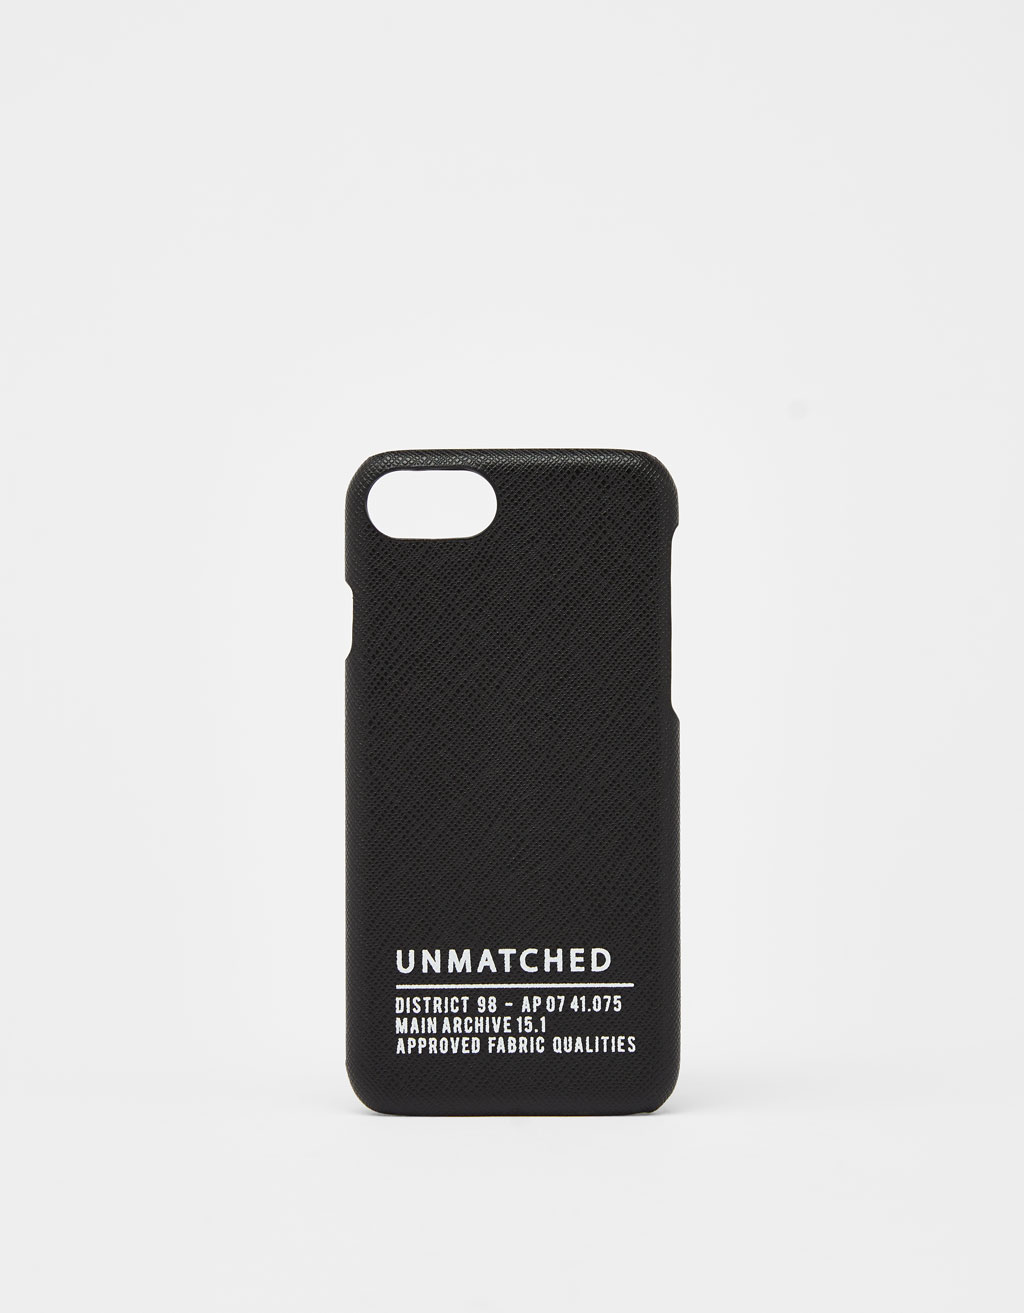 Carcasa Unmatched iPhone 6 / 6S / 7/ 8